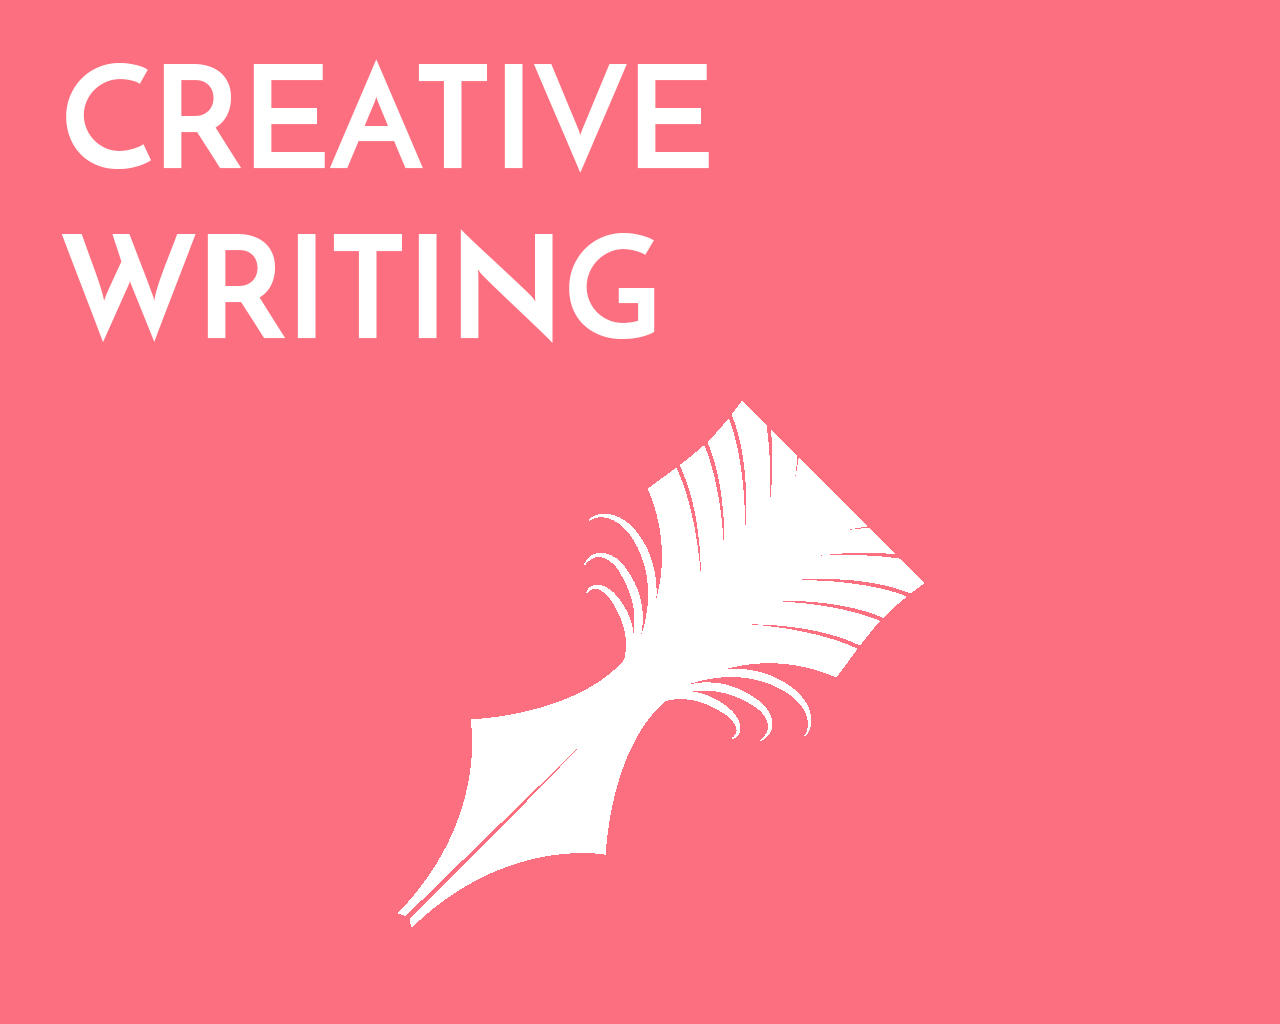 creative writing video The page you are looking for no longer exists perhaps you can return back to the site's homepage and see if you can find what you are looking for or, you can try finding it by using the search form below.